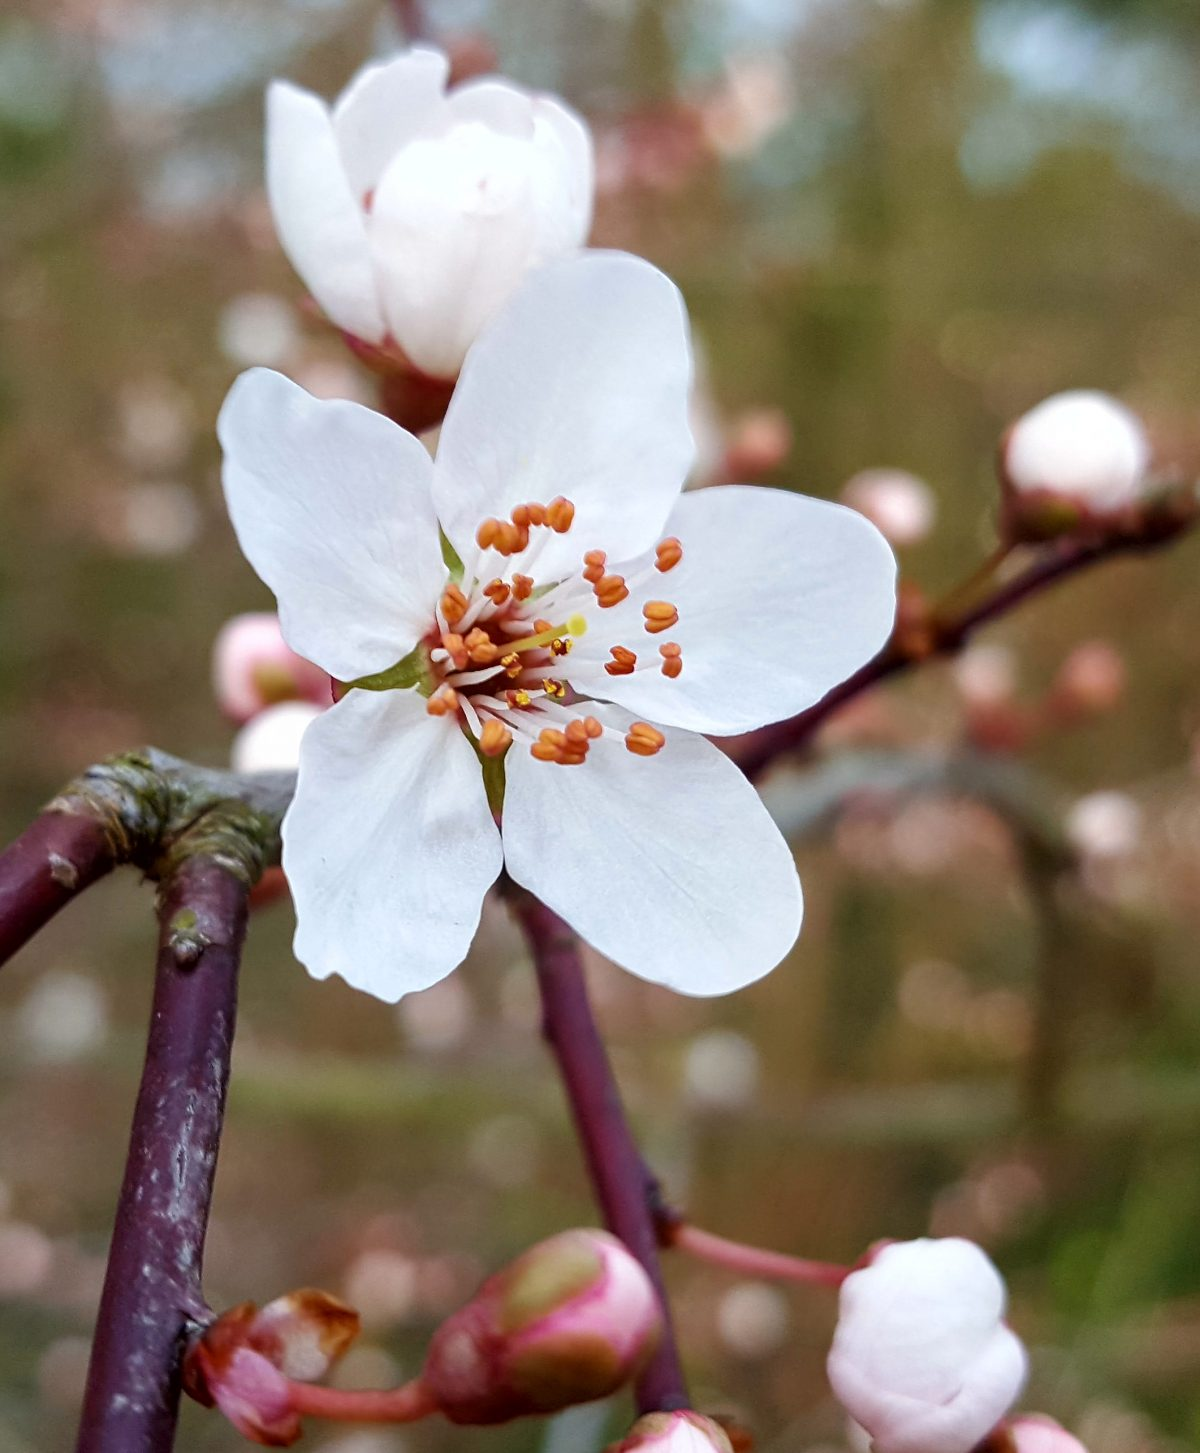 The pink flushed buds and orange-tipped stamens of cherry plum help to distinguish it from its close relative, blackthorn.